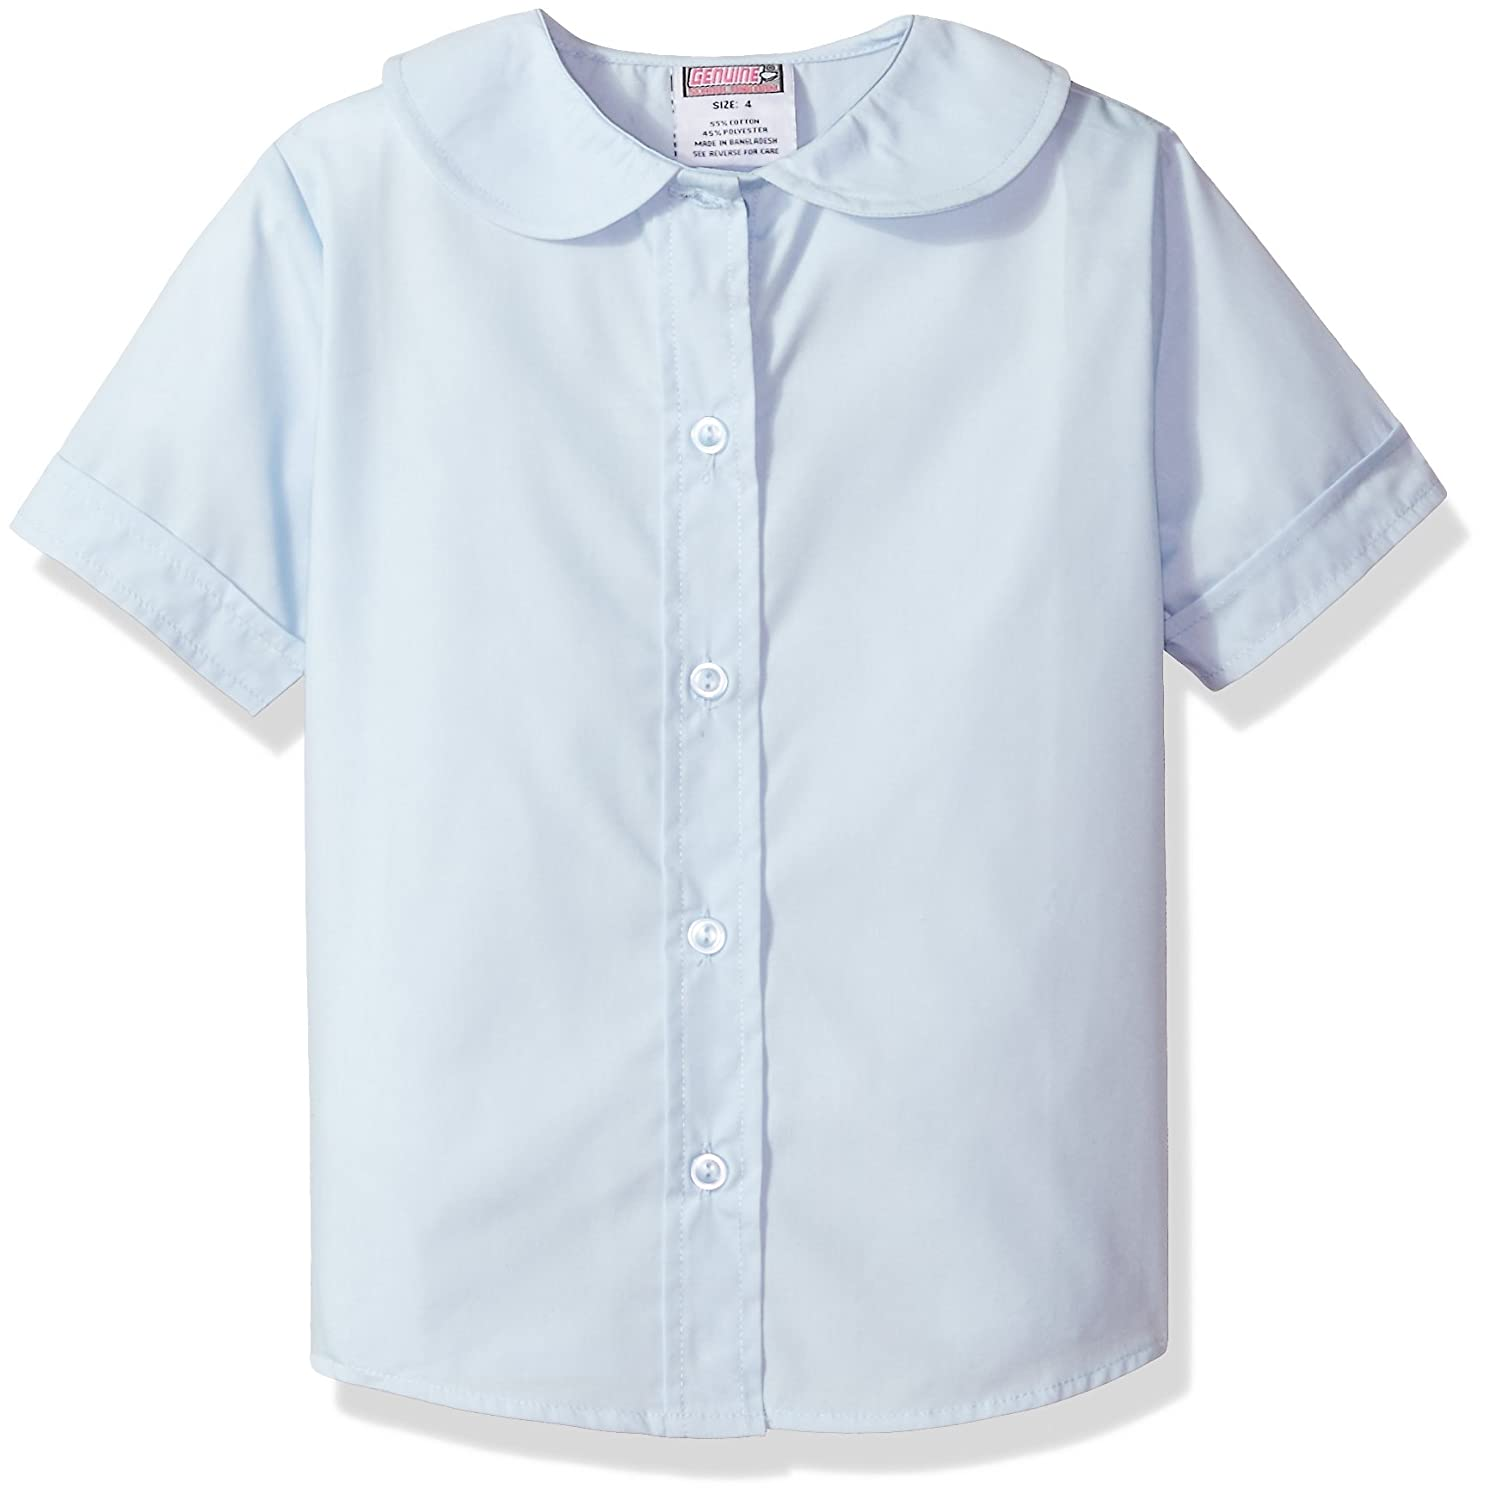 More Styles Available Genuine Girls Blouse